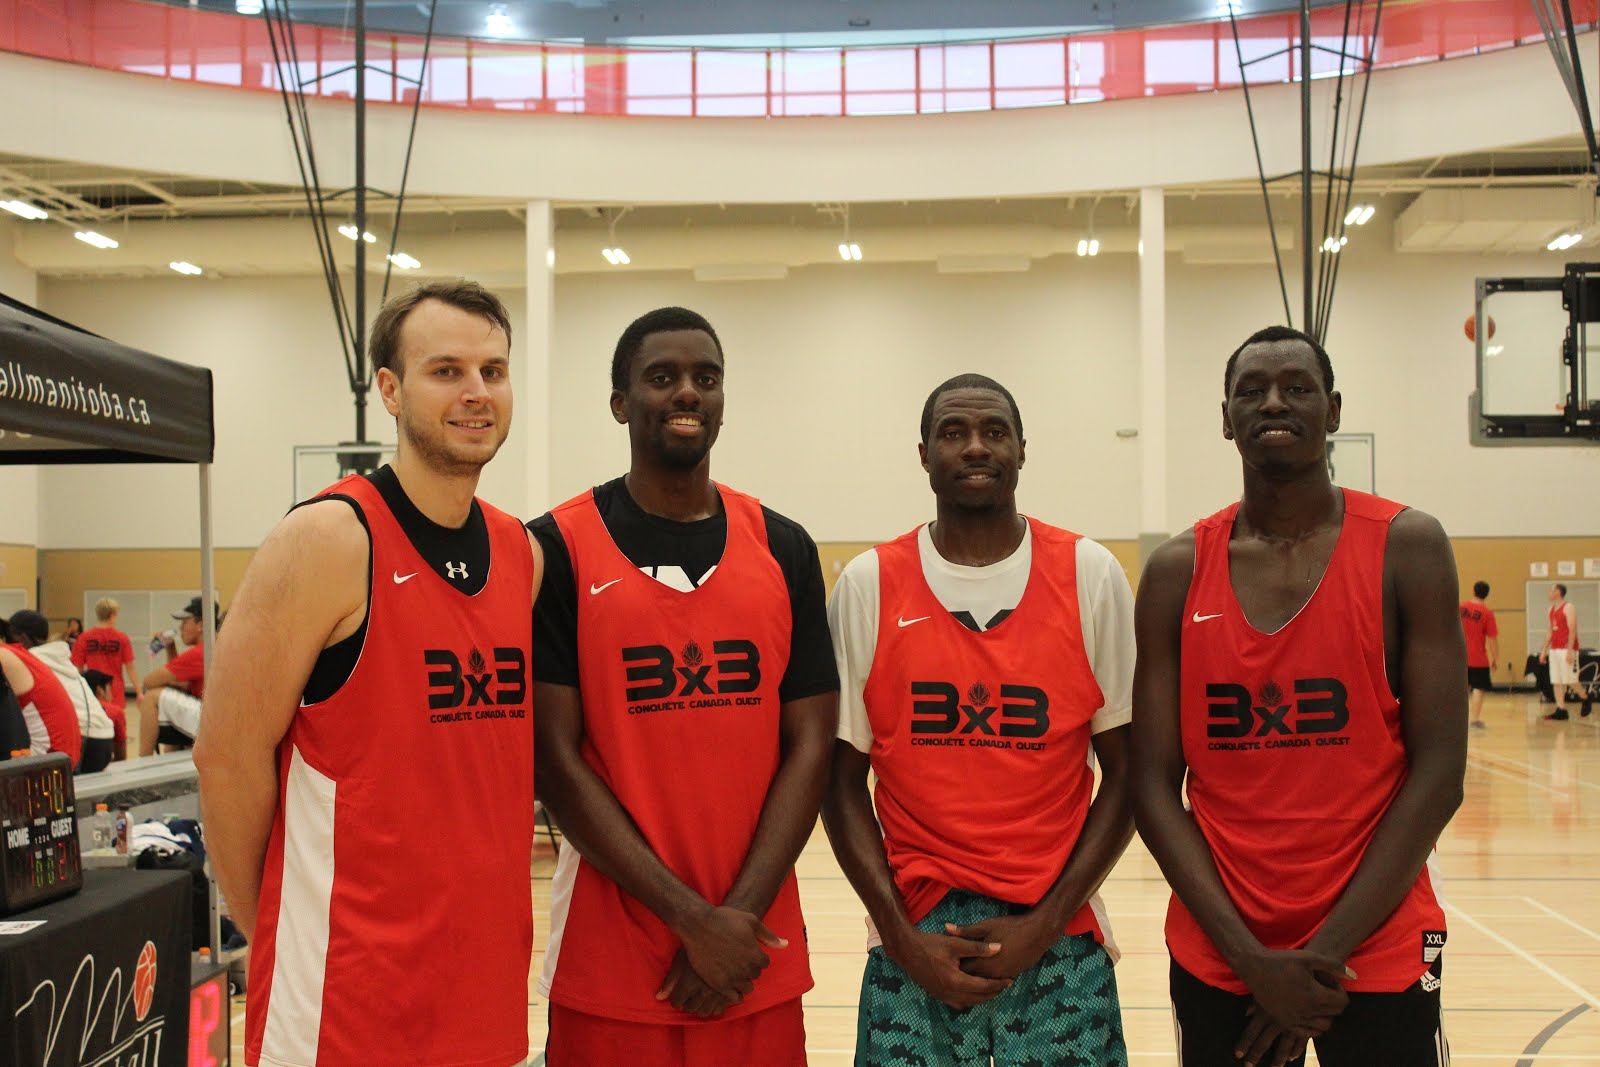 acfd7cc4d3d9 The top men's division was part of the 3x3 Canada Quest series and saw Team  Acceleration Performance (WYATT ANDERS, JELANE PRYCE, O'NEIL GORDON and  AYOB ...